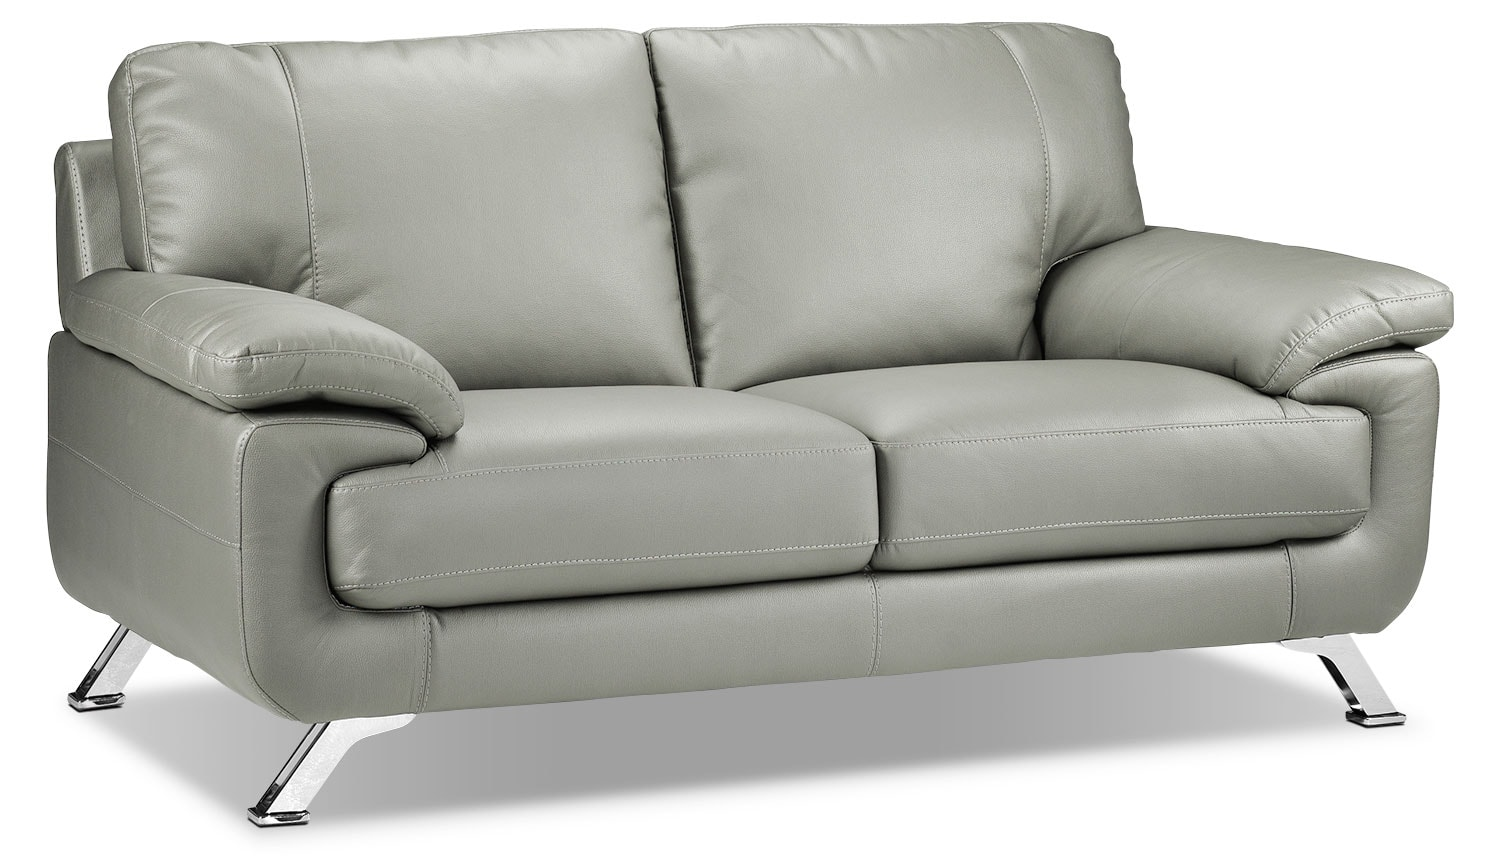 Infinity Loveseat - Light Grey